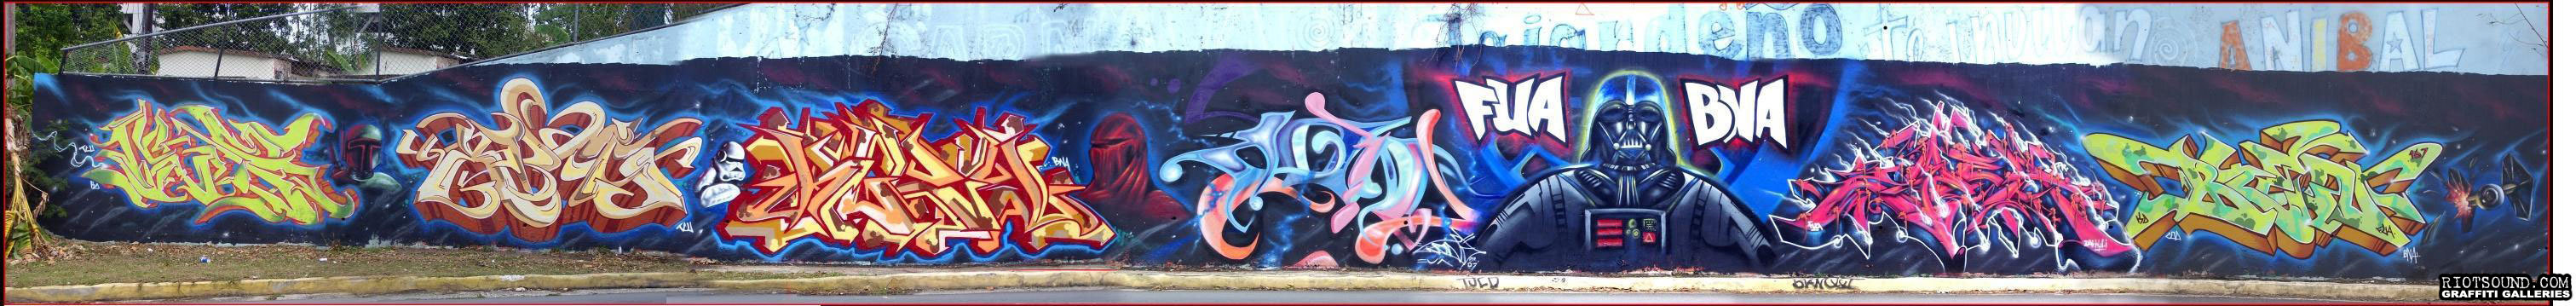 BNA FUA Graffiti Production